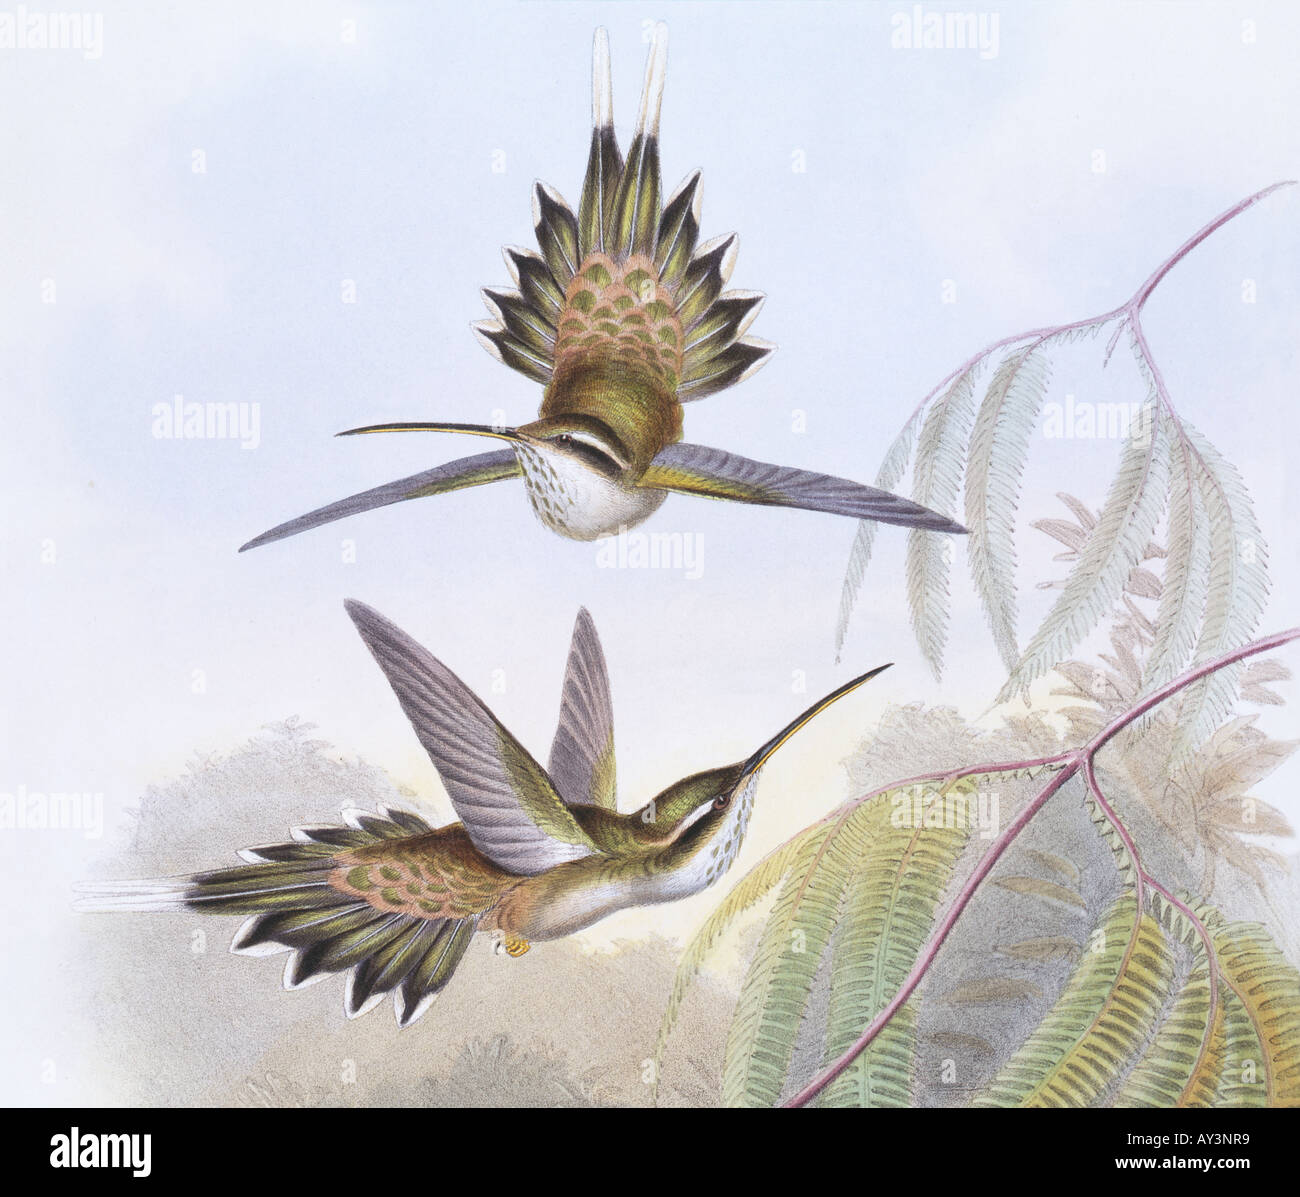 Phaethornis anthophilus pale bellied hermit - Stock Image